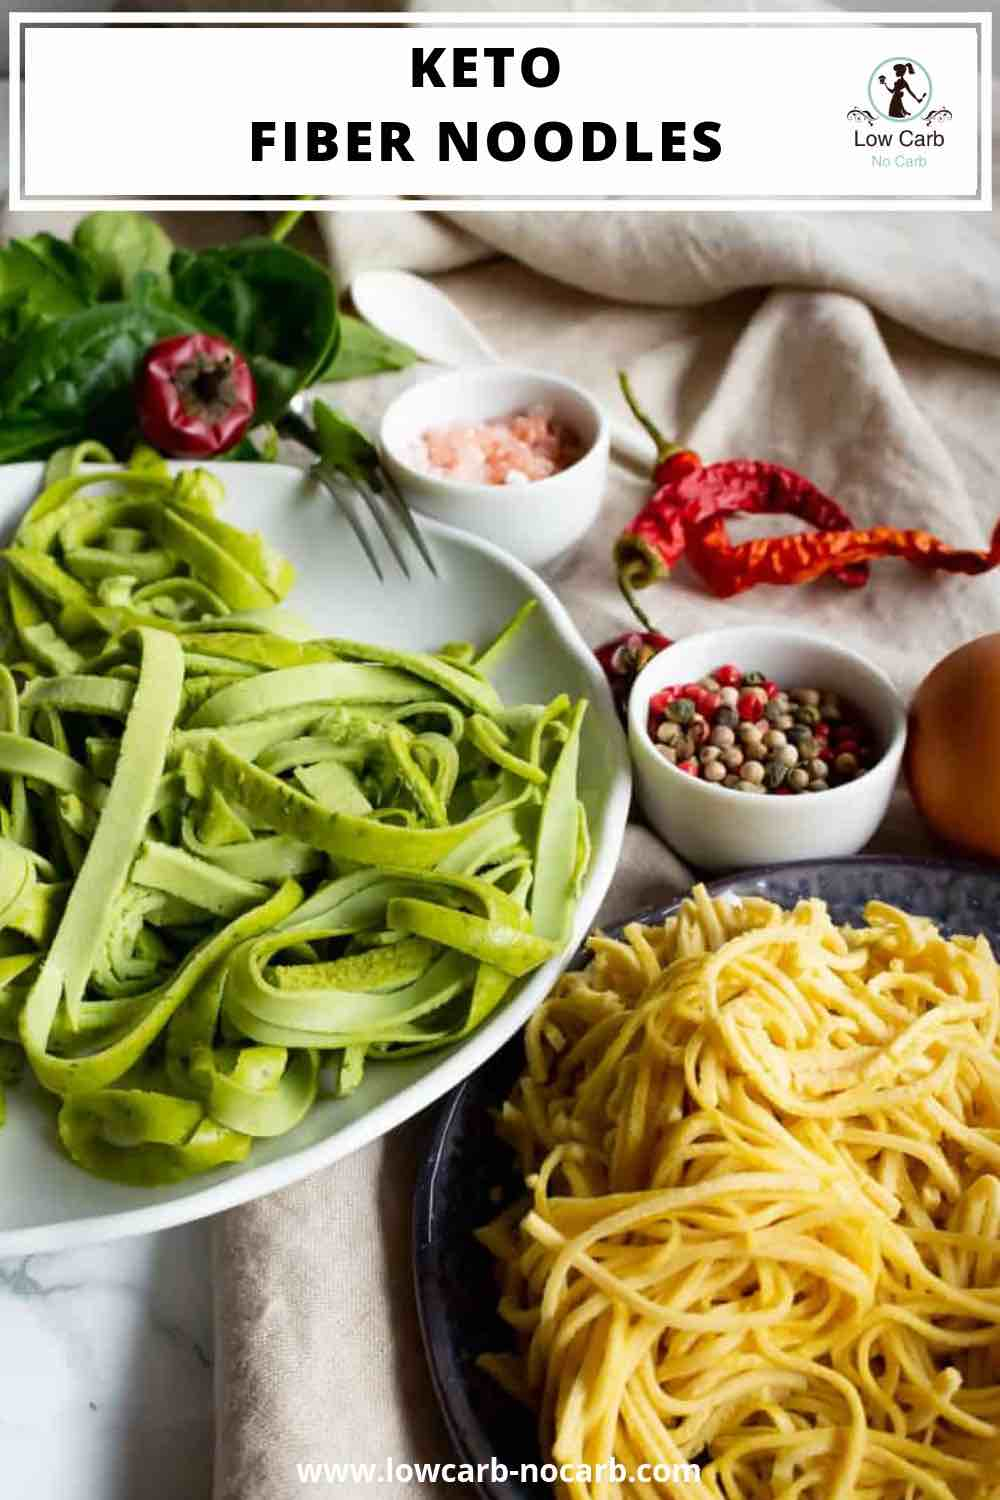 Keto Fiber Noodles with writing on top and green and white noodles